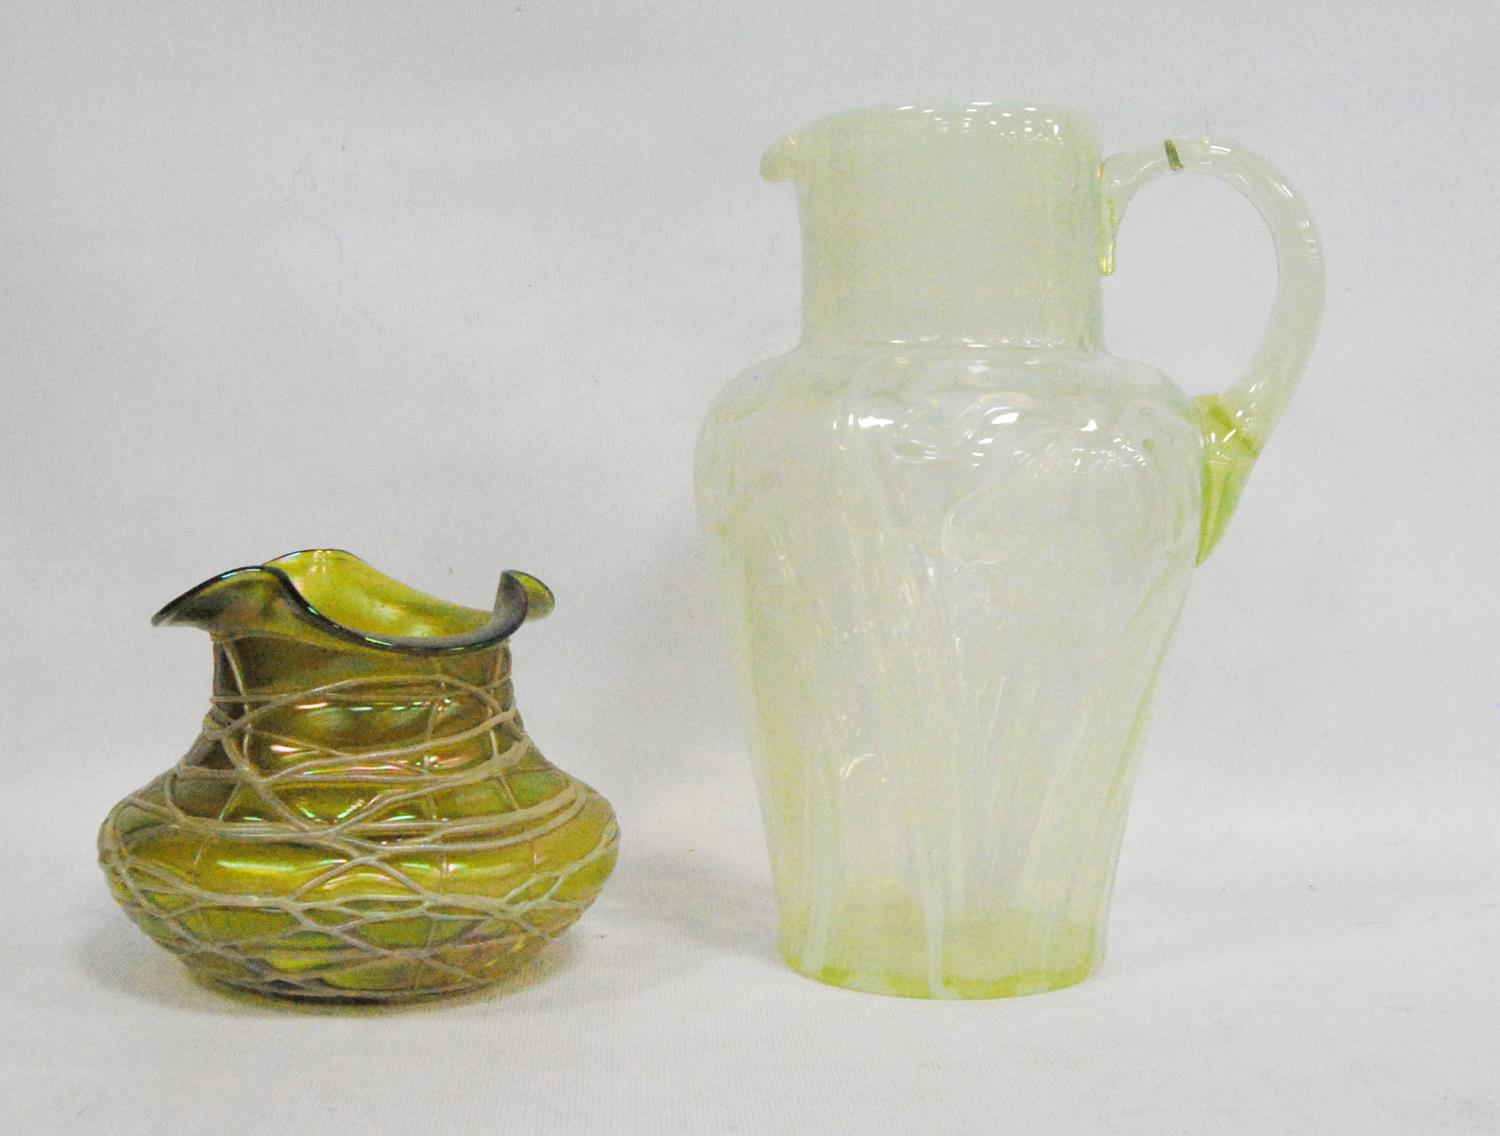 Loetz-style glass vase, 11cm high, also a vaseline-style jug with floral decoration, 23cm high. (2)